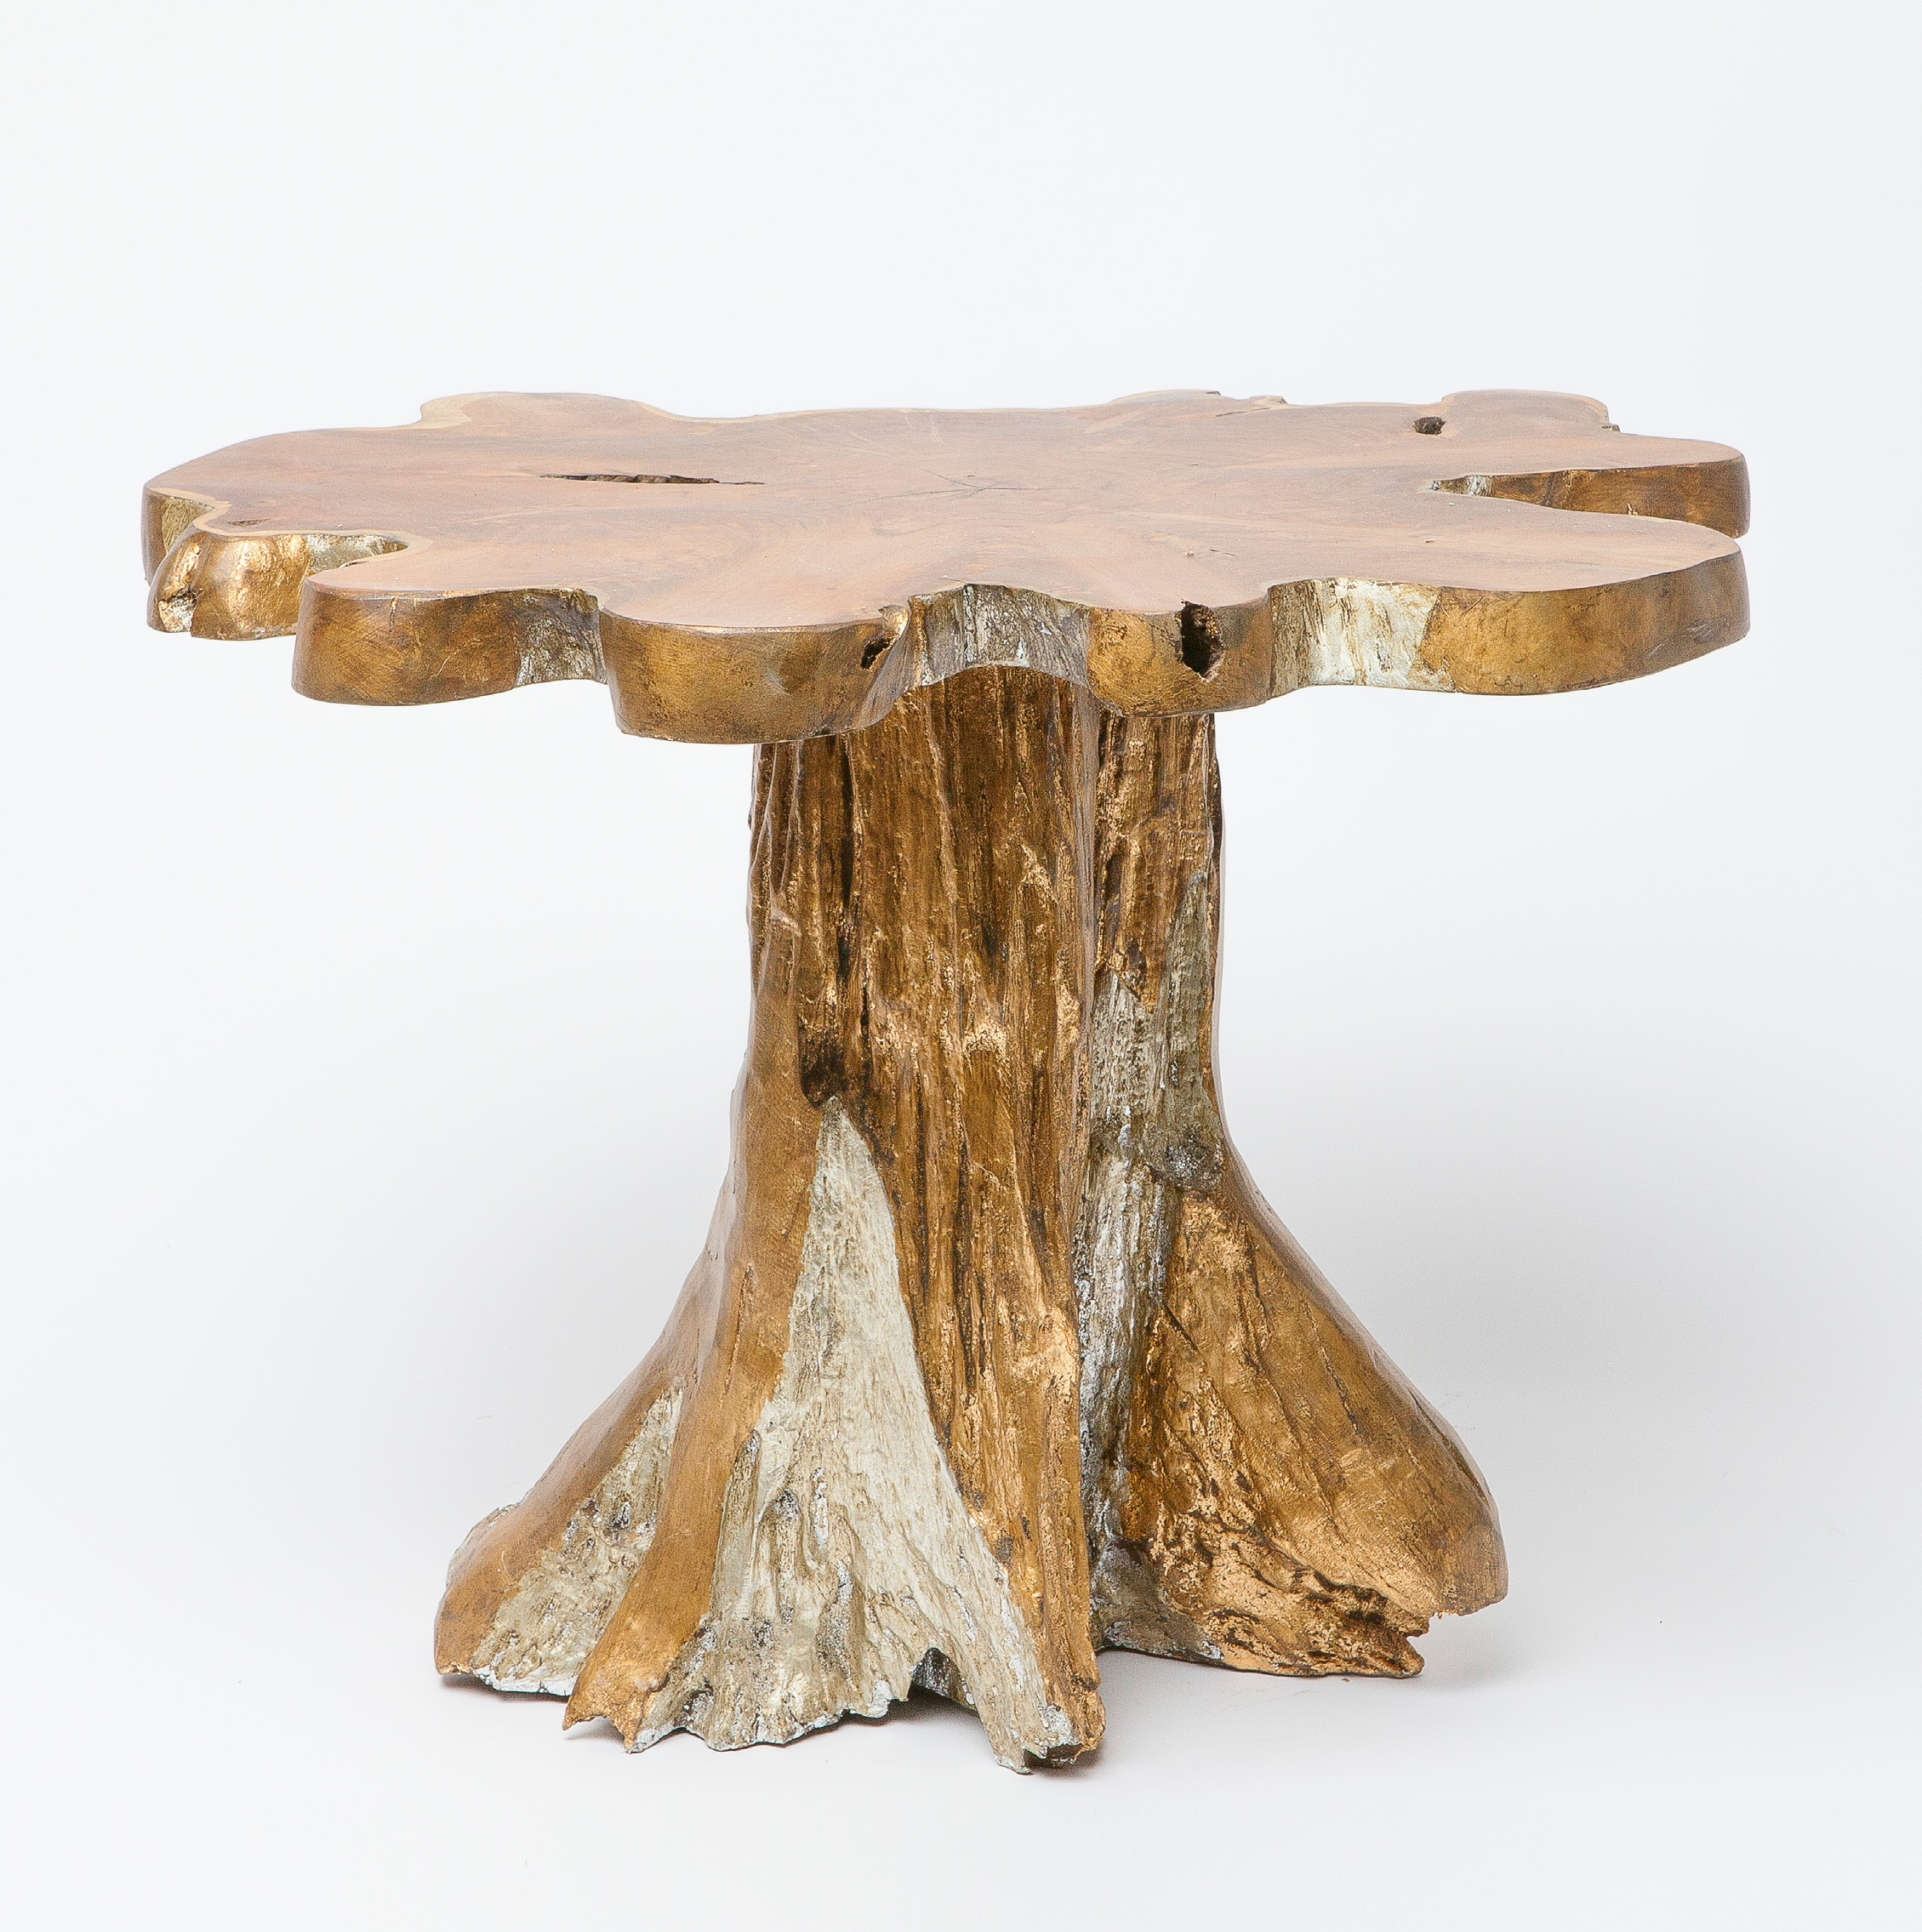 jessa teak root side table mecox gardens fnst wood accent stump black bedside metal bar circle coffee with storage umbrella stand base cute tables hand painted drawers pier